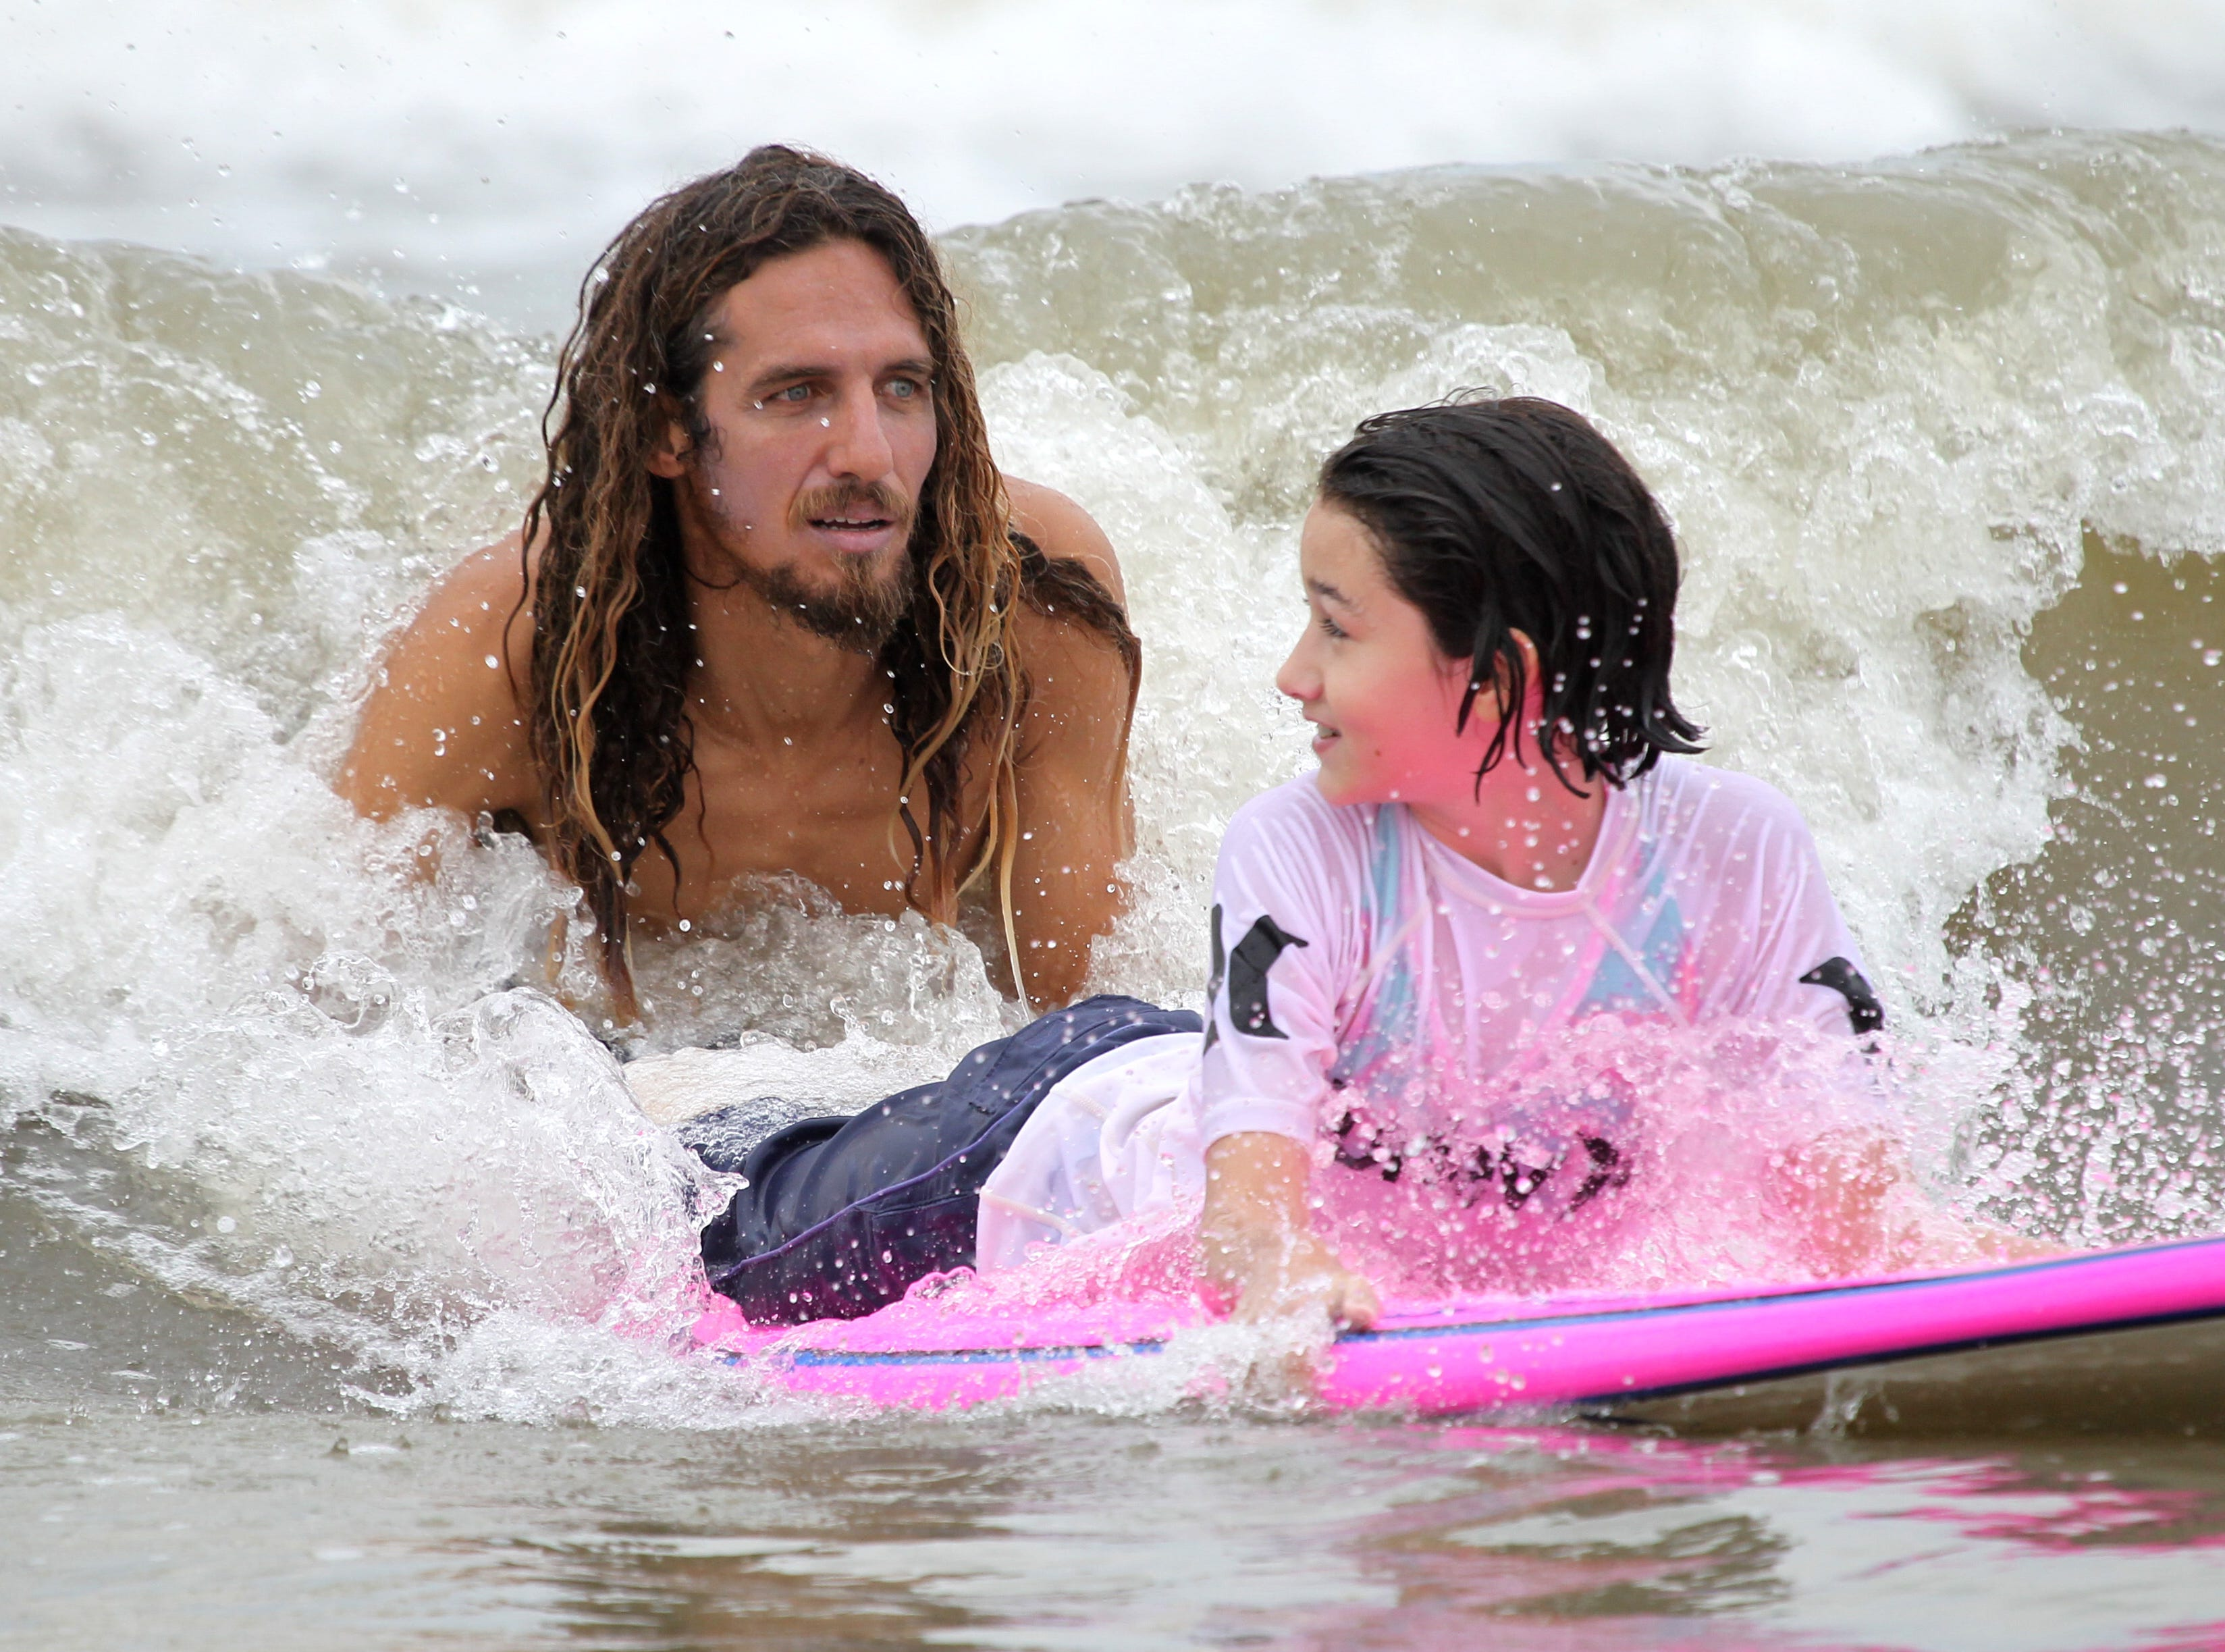 Professional surfer Rob Machado works with Phoebe Rivera, 12, as she participates in the Rip My Shred Stick surf competition at Bob Hall Pier on June 8, 2012. The free competition, which is in its second year, was open to youth 16 and younger.